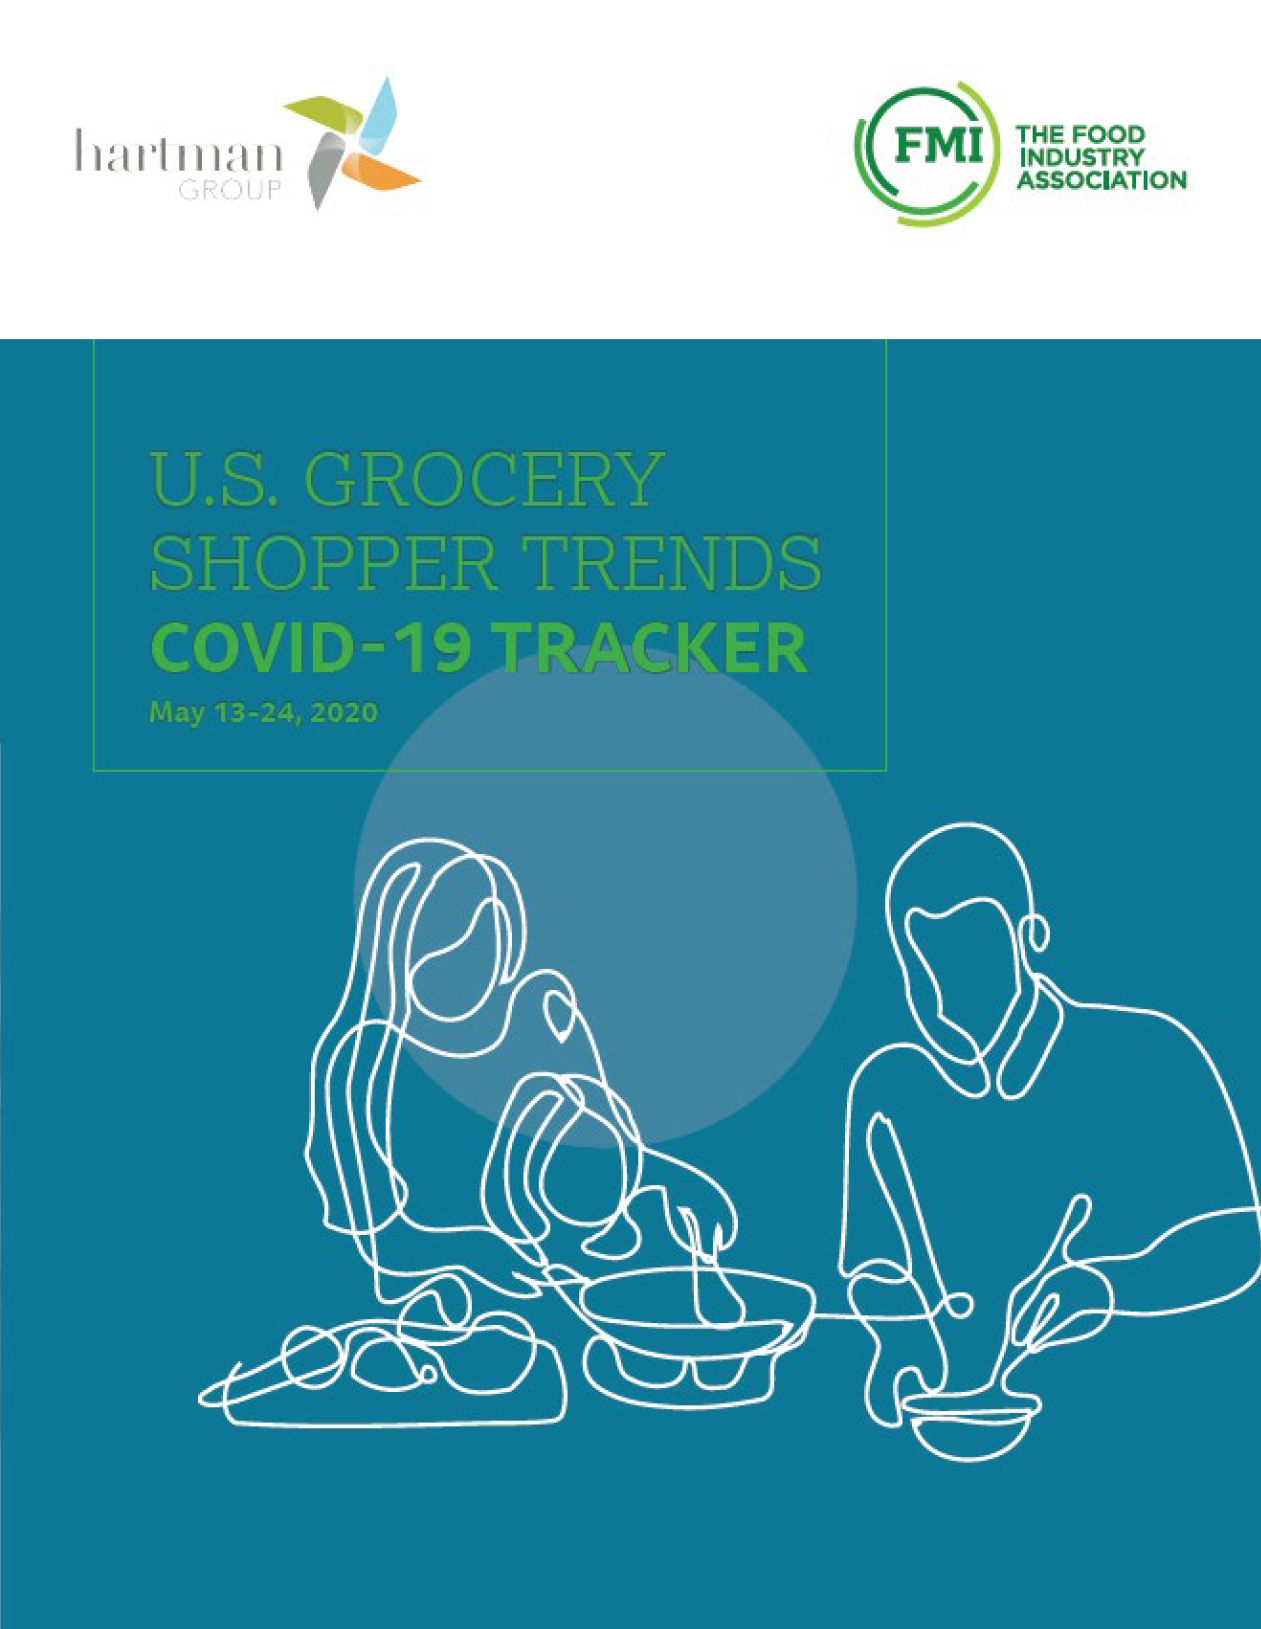 U.S. Grocery Shopper Trends COVID-19 Tracker May_13_24_2020